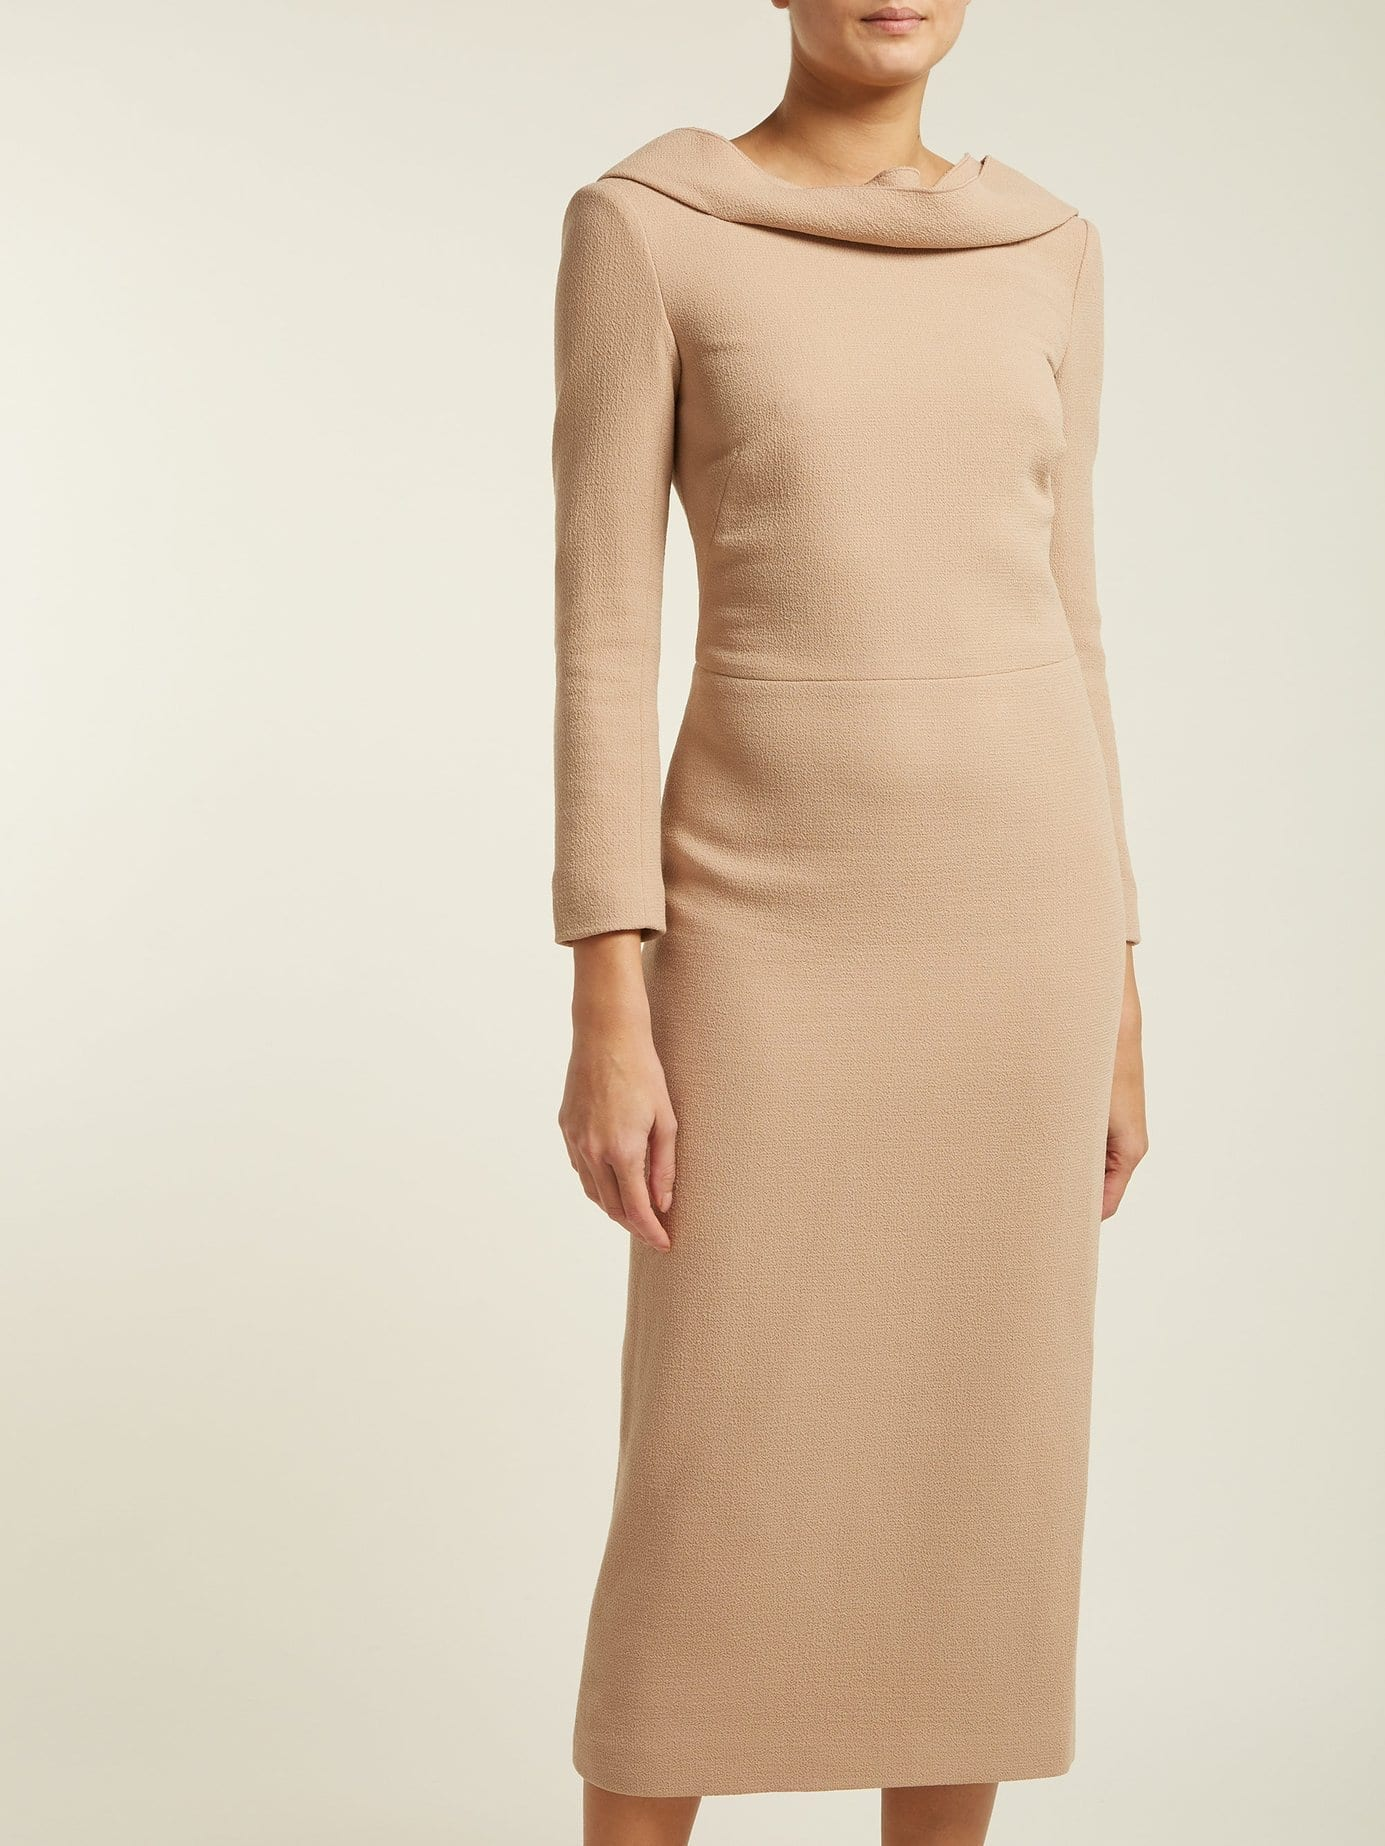 CARL KAPP Noah Wool-Crepe Camel Dress